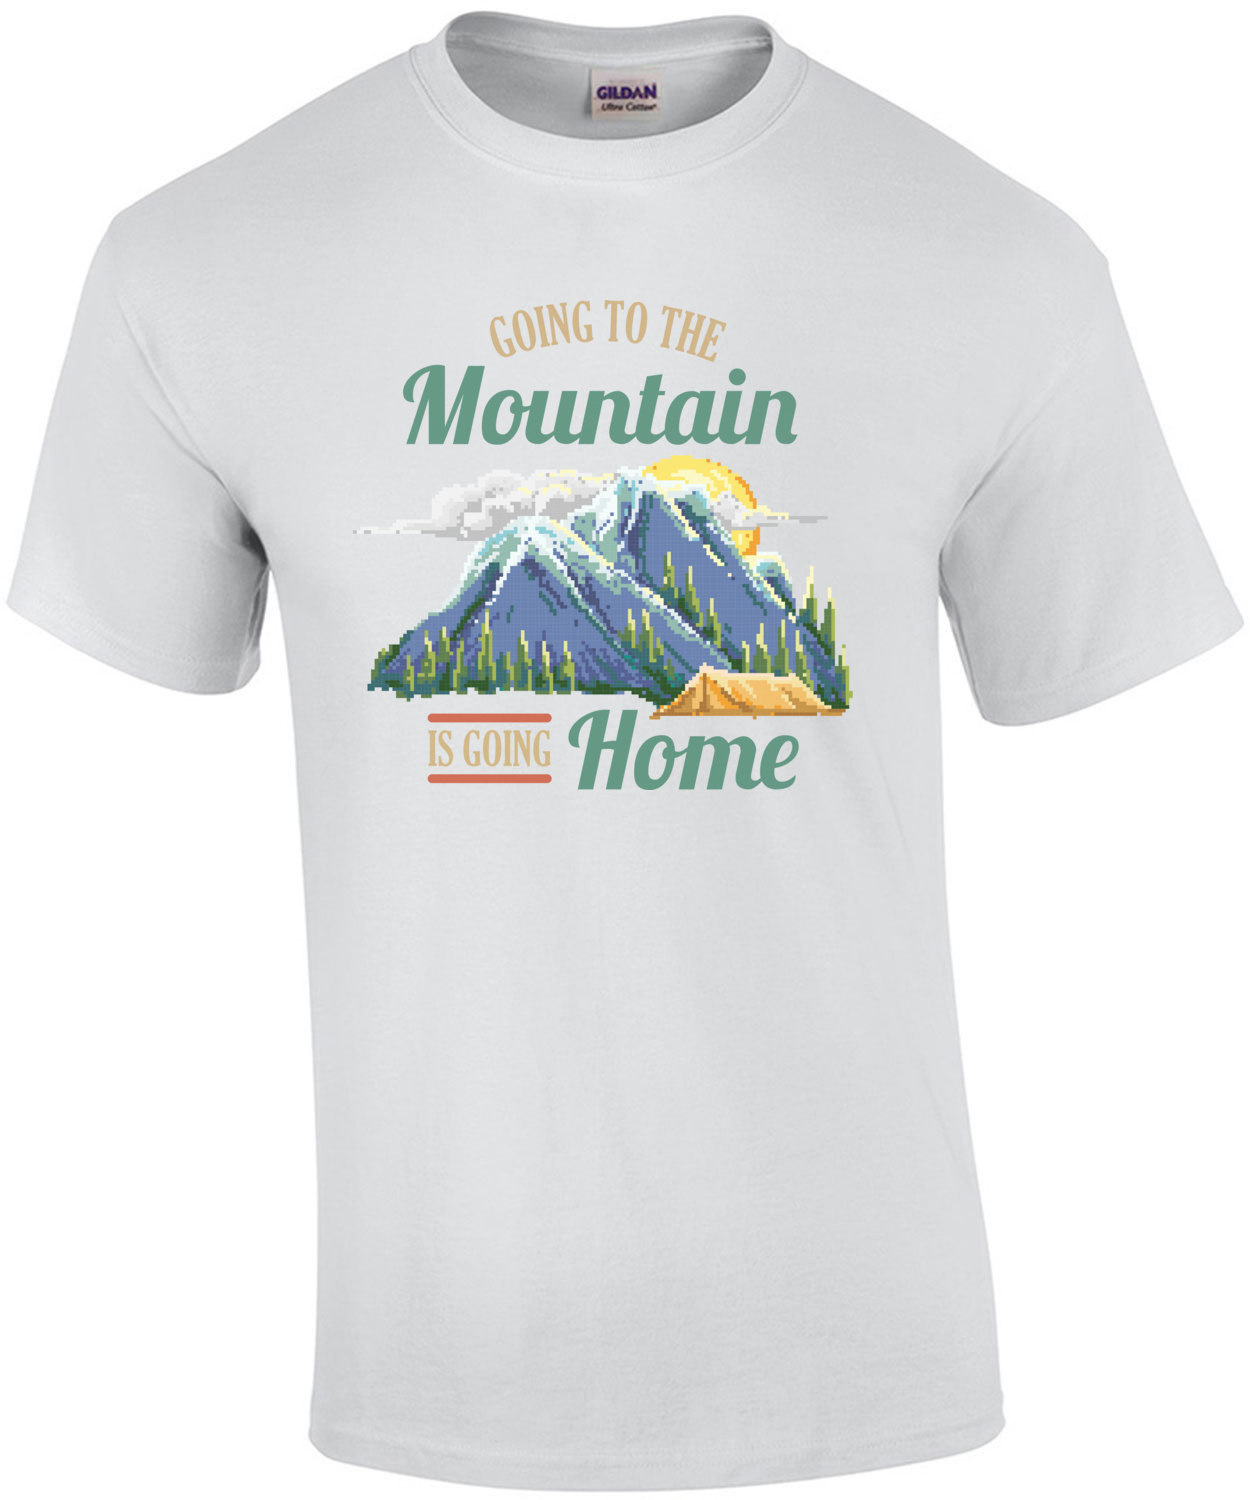 Going To The Mountain Is Going Home T-Shirt